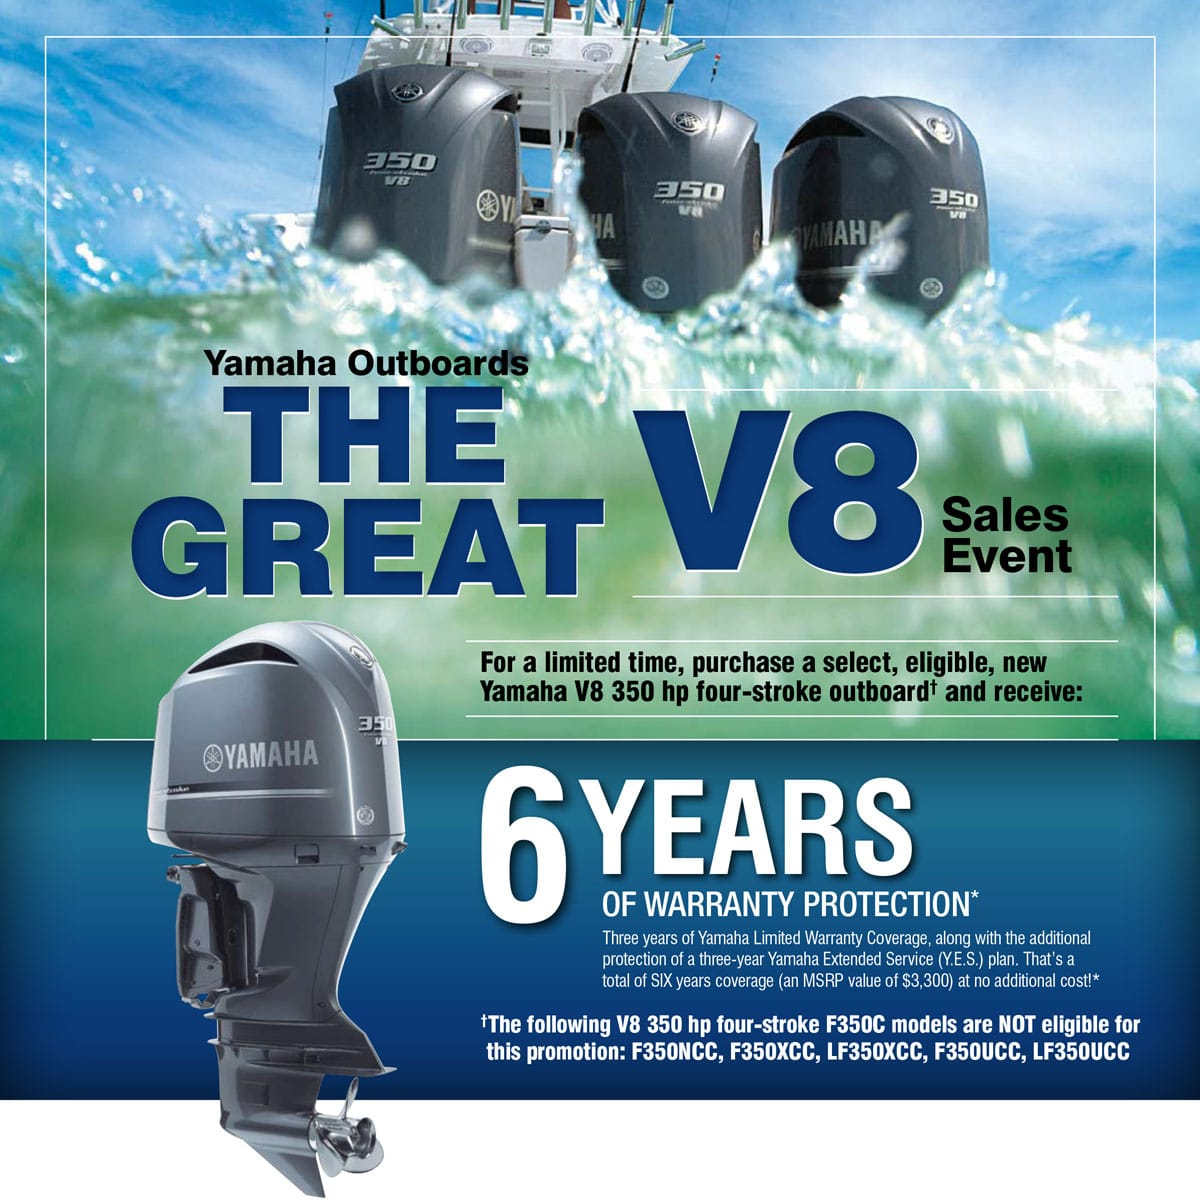 Yamaha Outboard Warranty Promotion